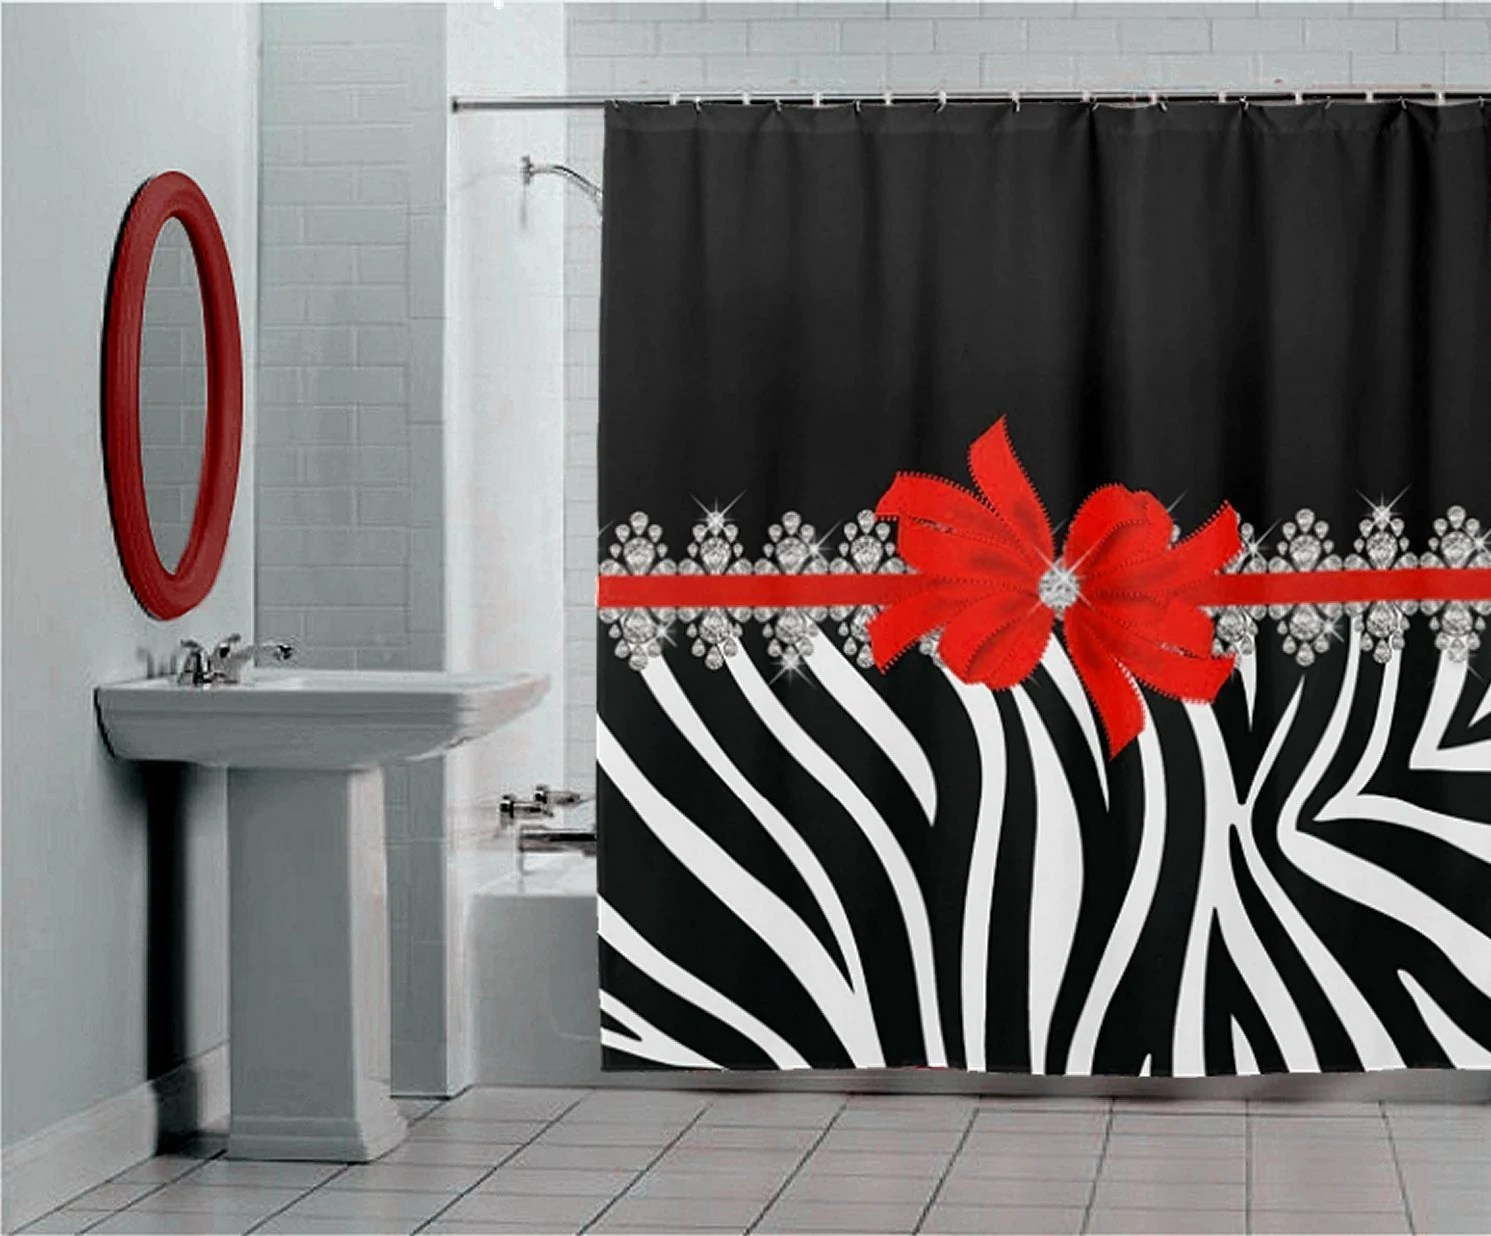 Diamond Delilah Red Bow With Black And White Zebra Stripes Shower Curtain Bath Mats Towels